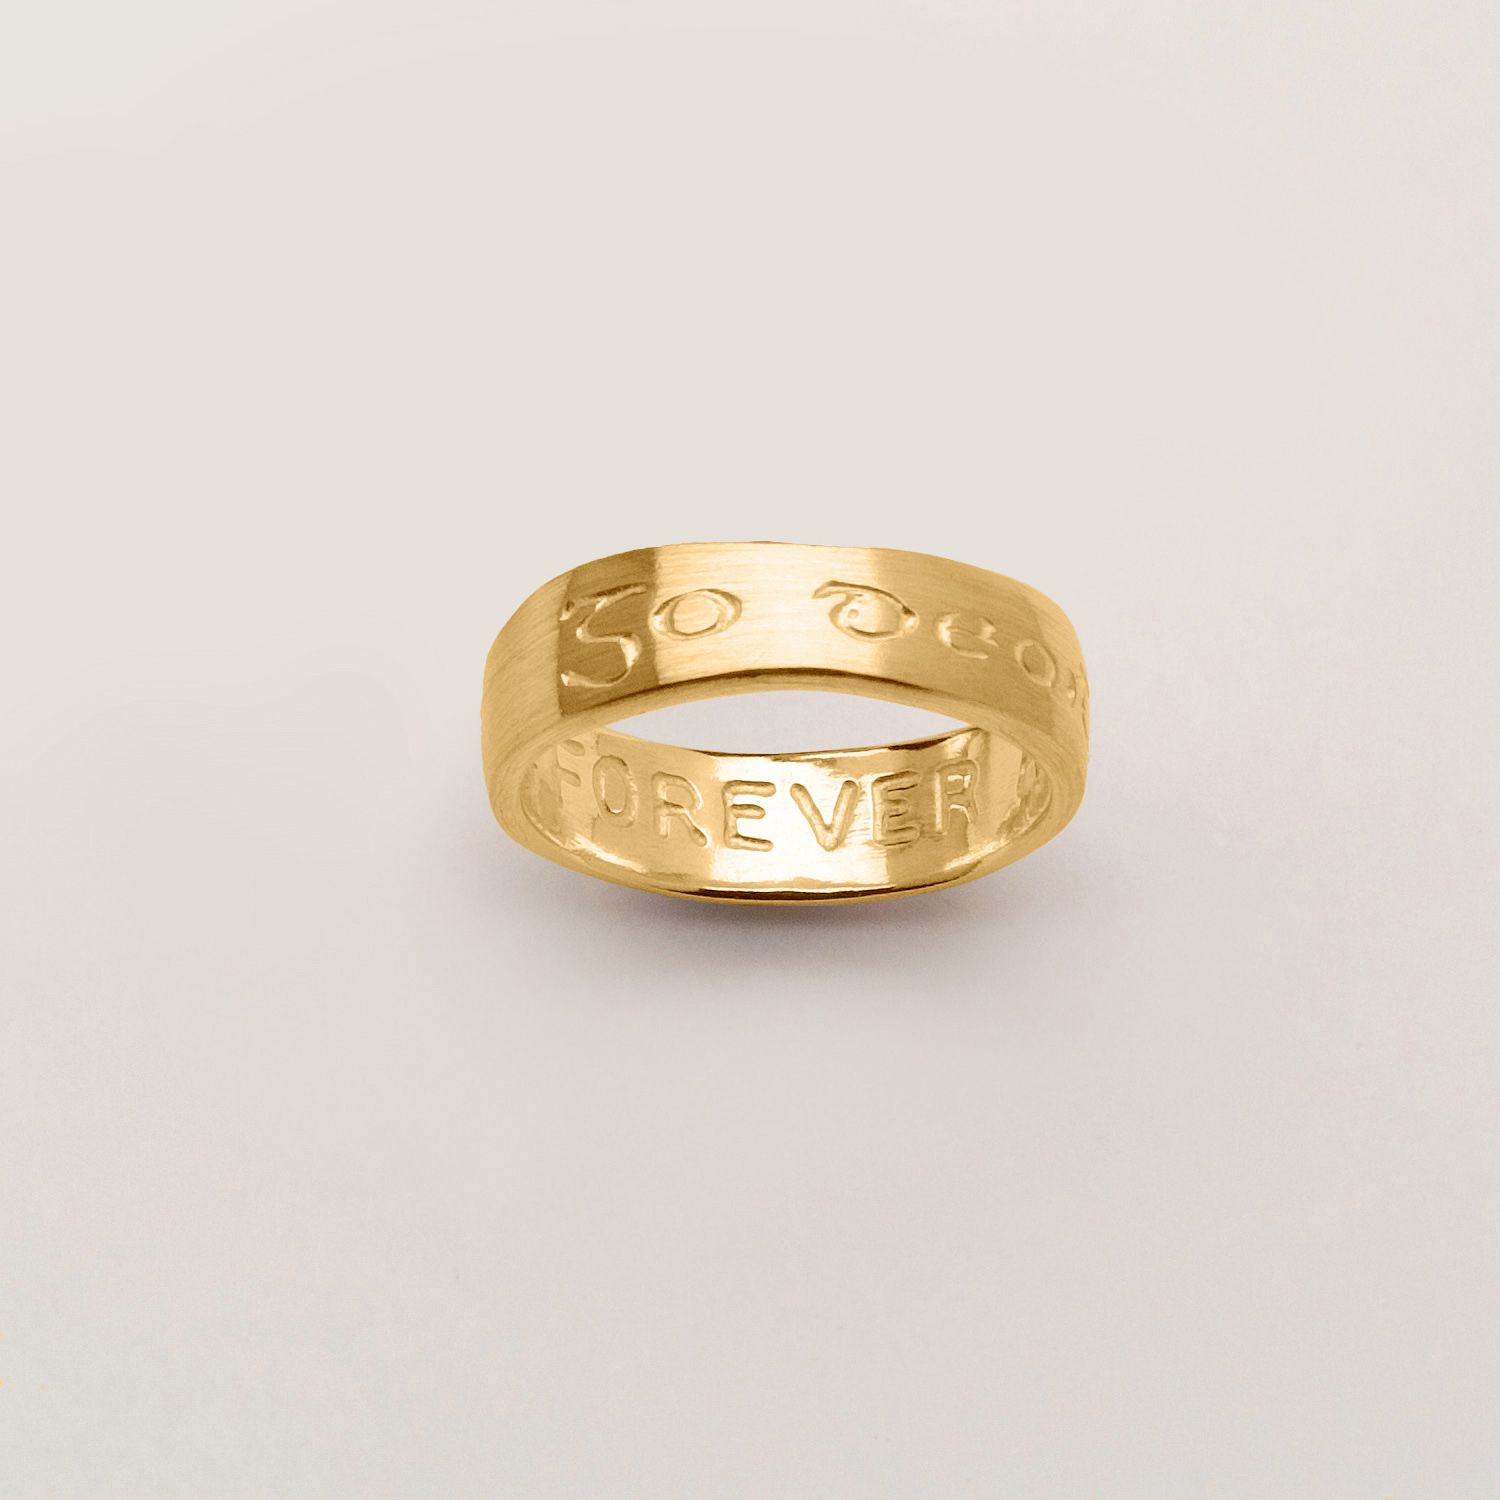 forever 'go deoid' ring - an irish take on traditional wedding bands